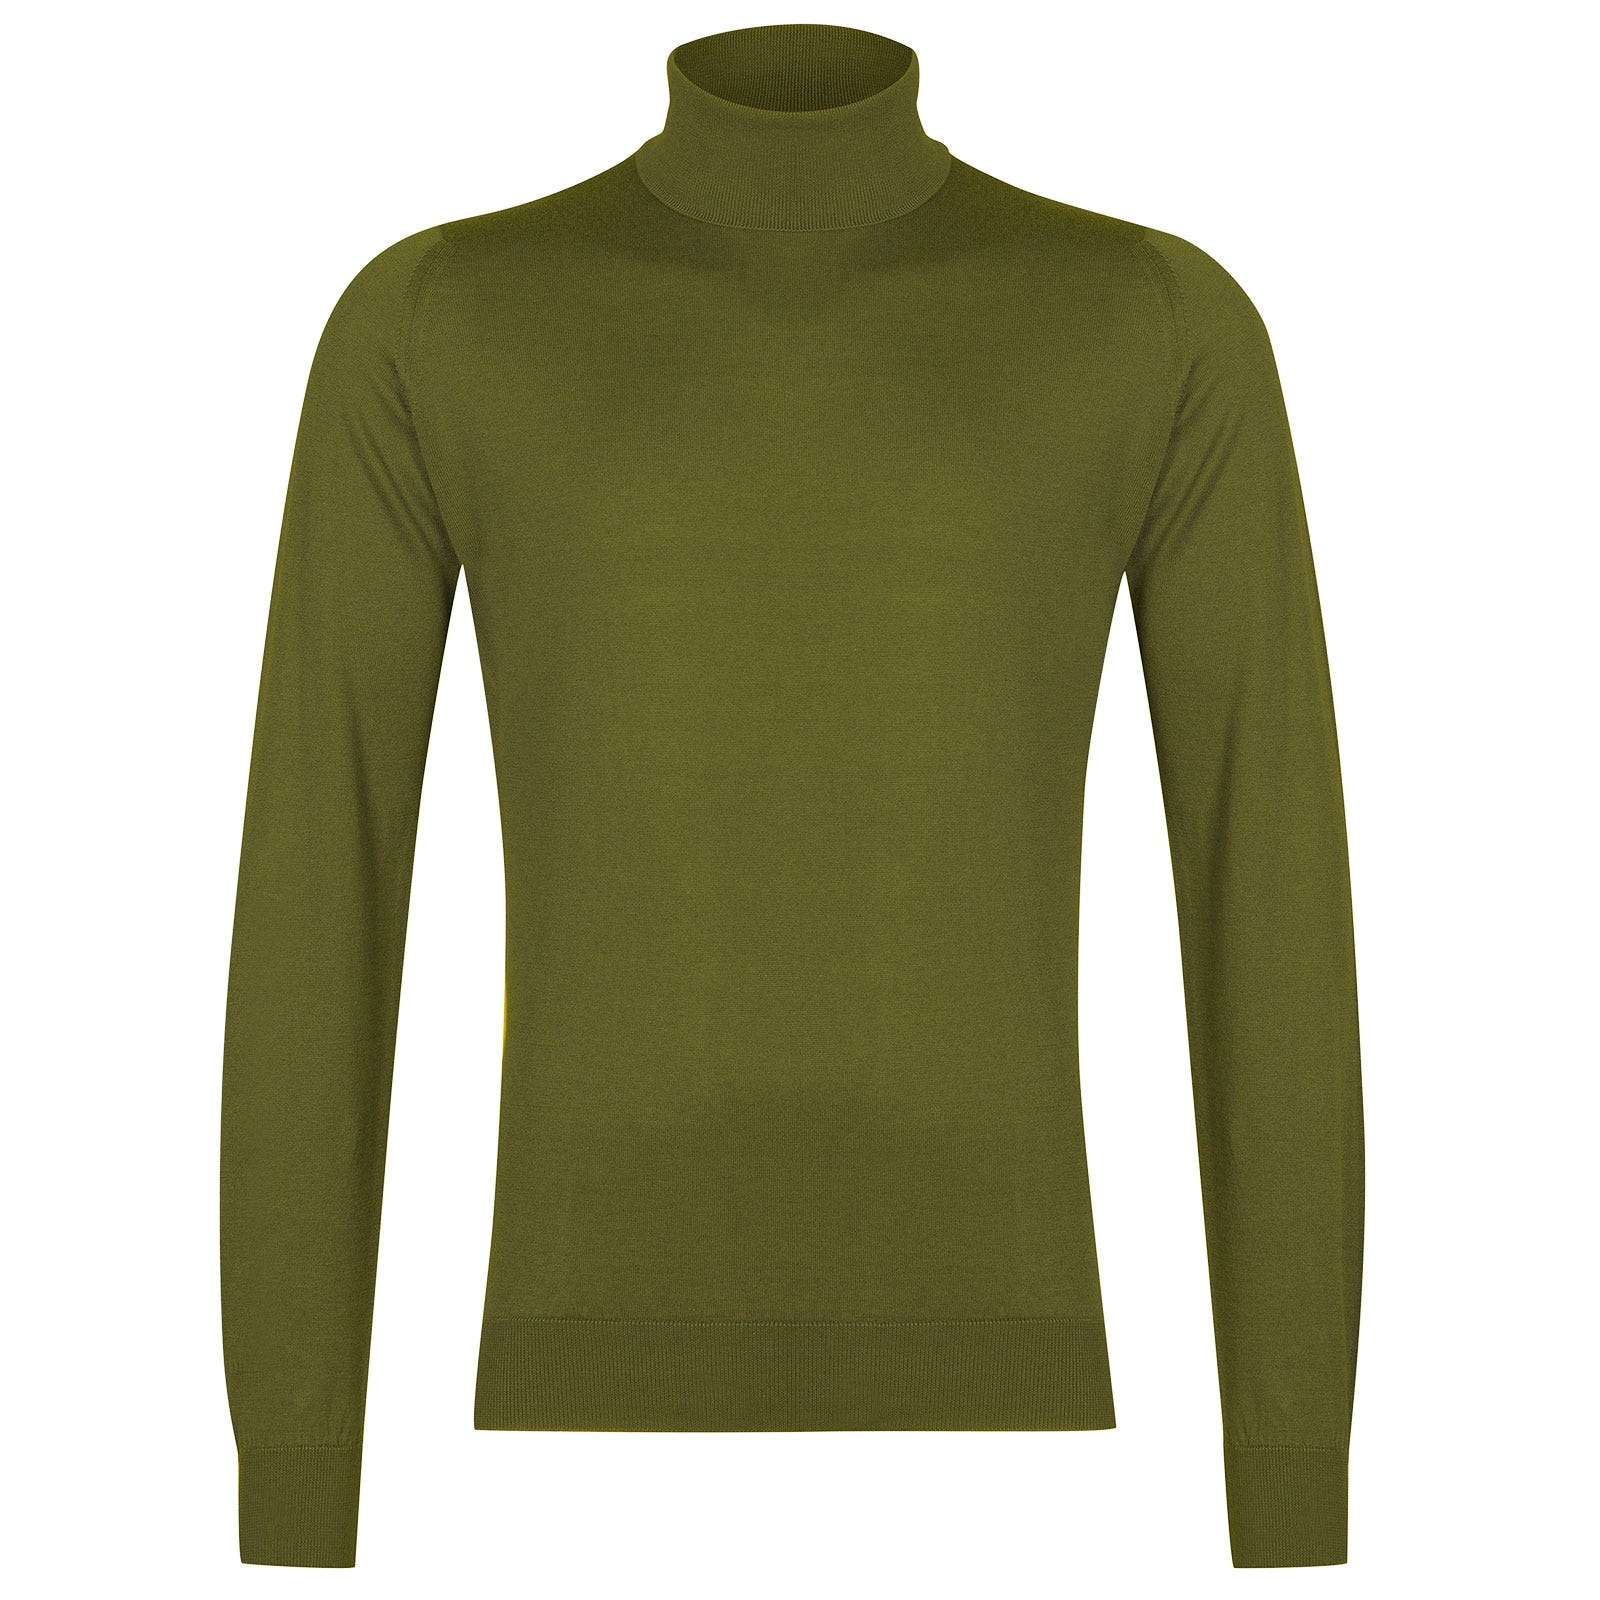 John Smedley Hawley Sea Island Cotton Pullover in Lumsdale Green-M